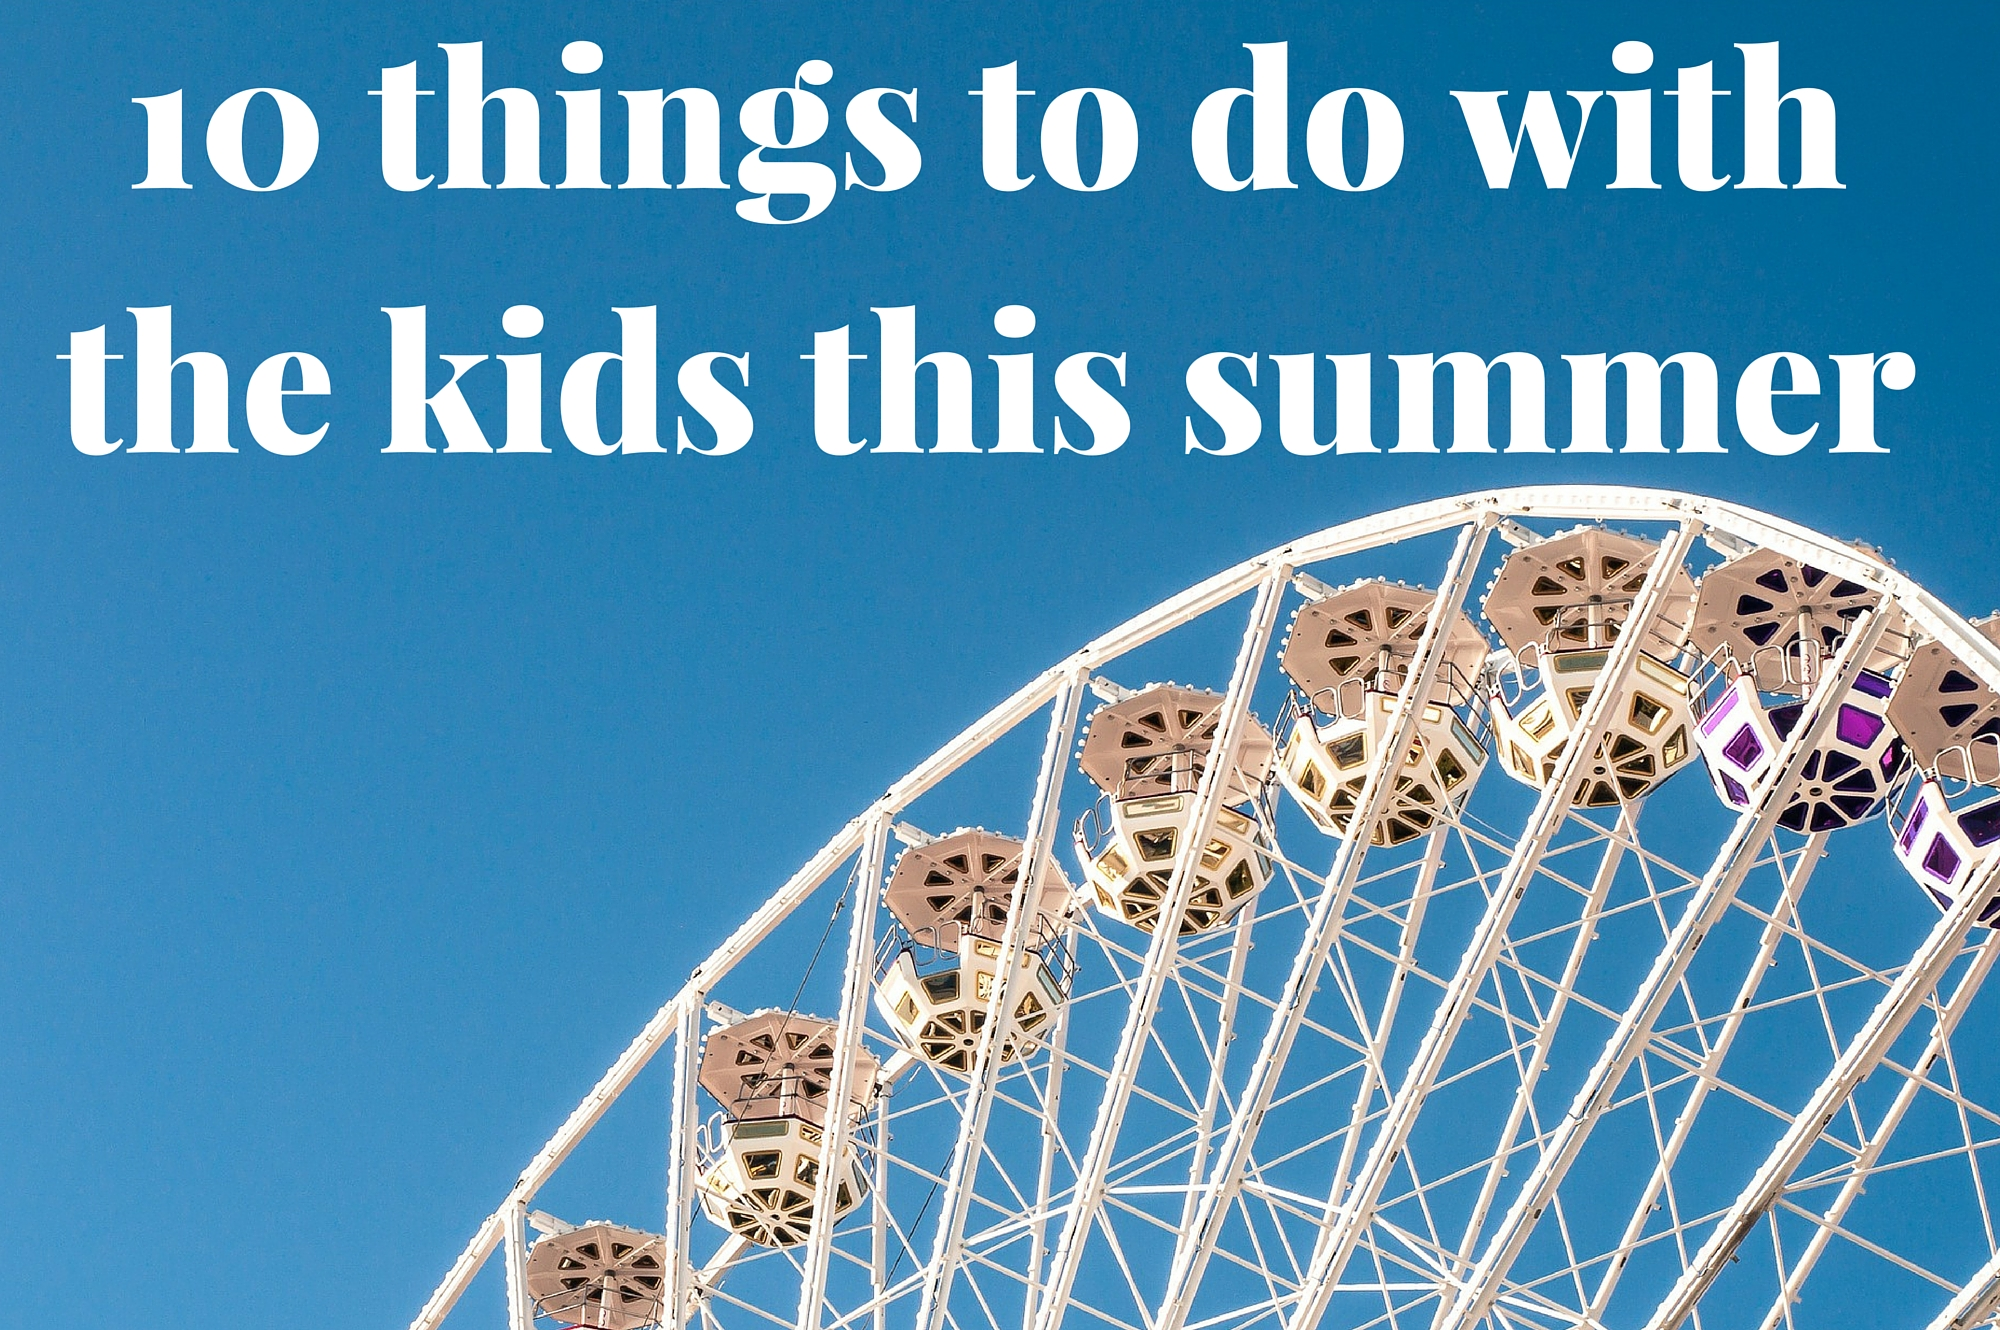 10 things to do with the kids this summer - Saucepan Kids - free things to do in Ireland with the kids